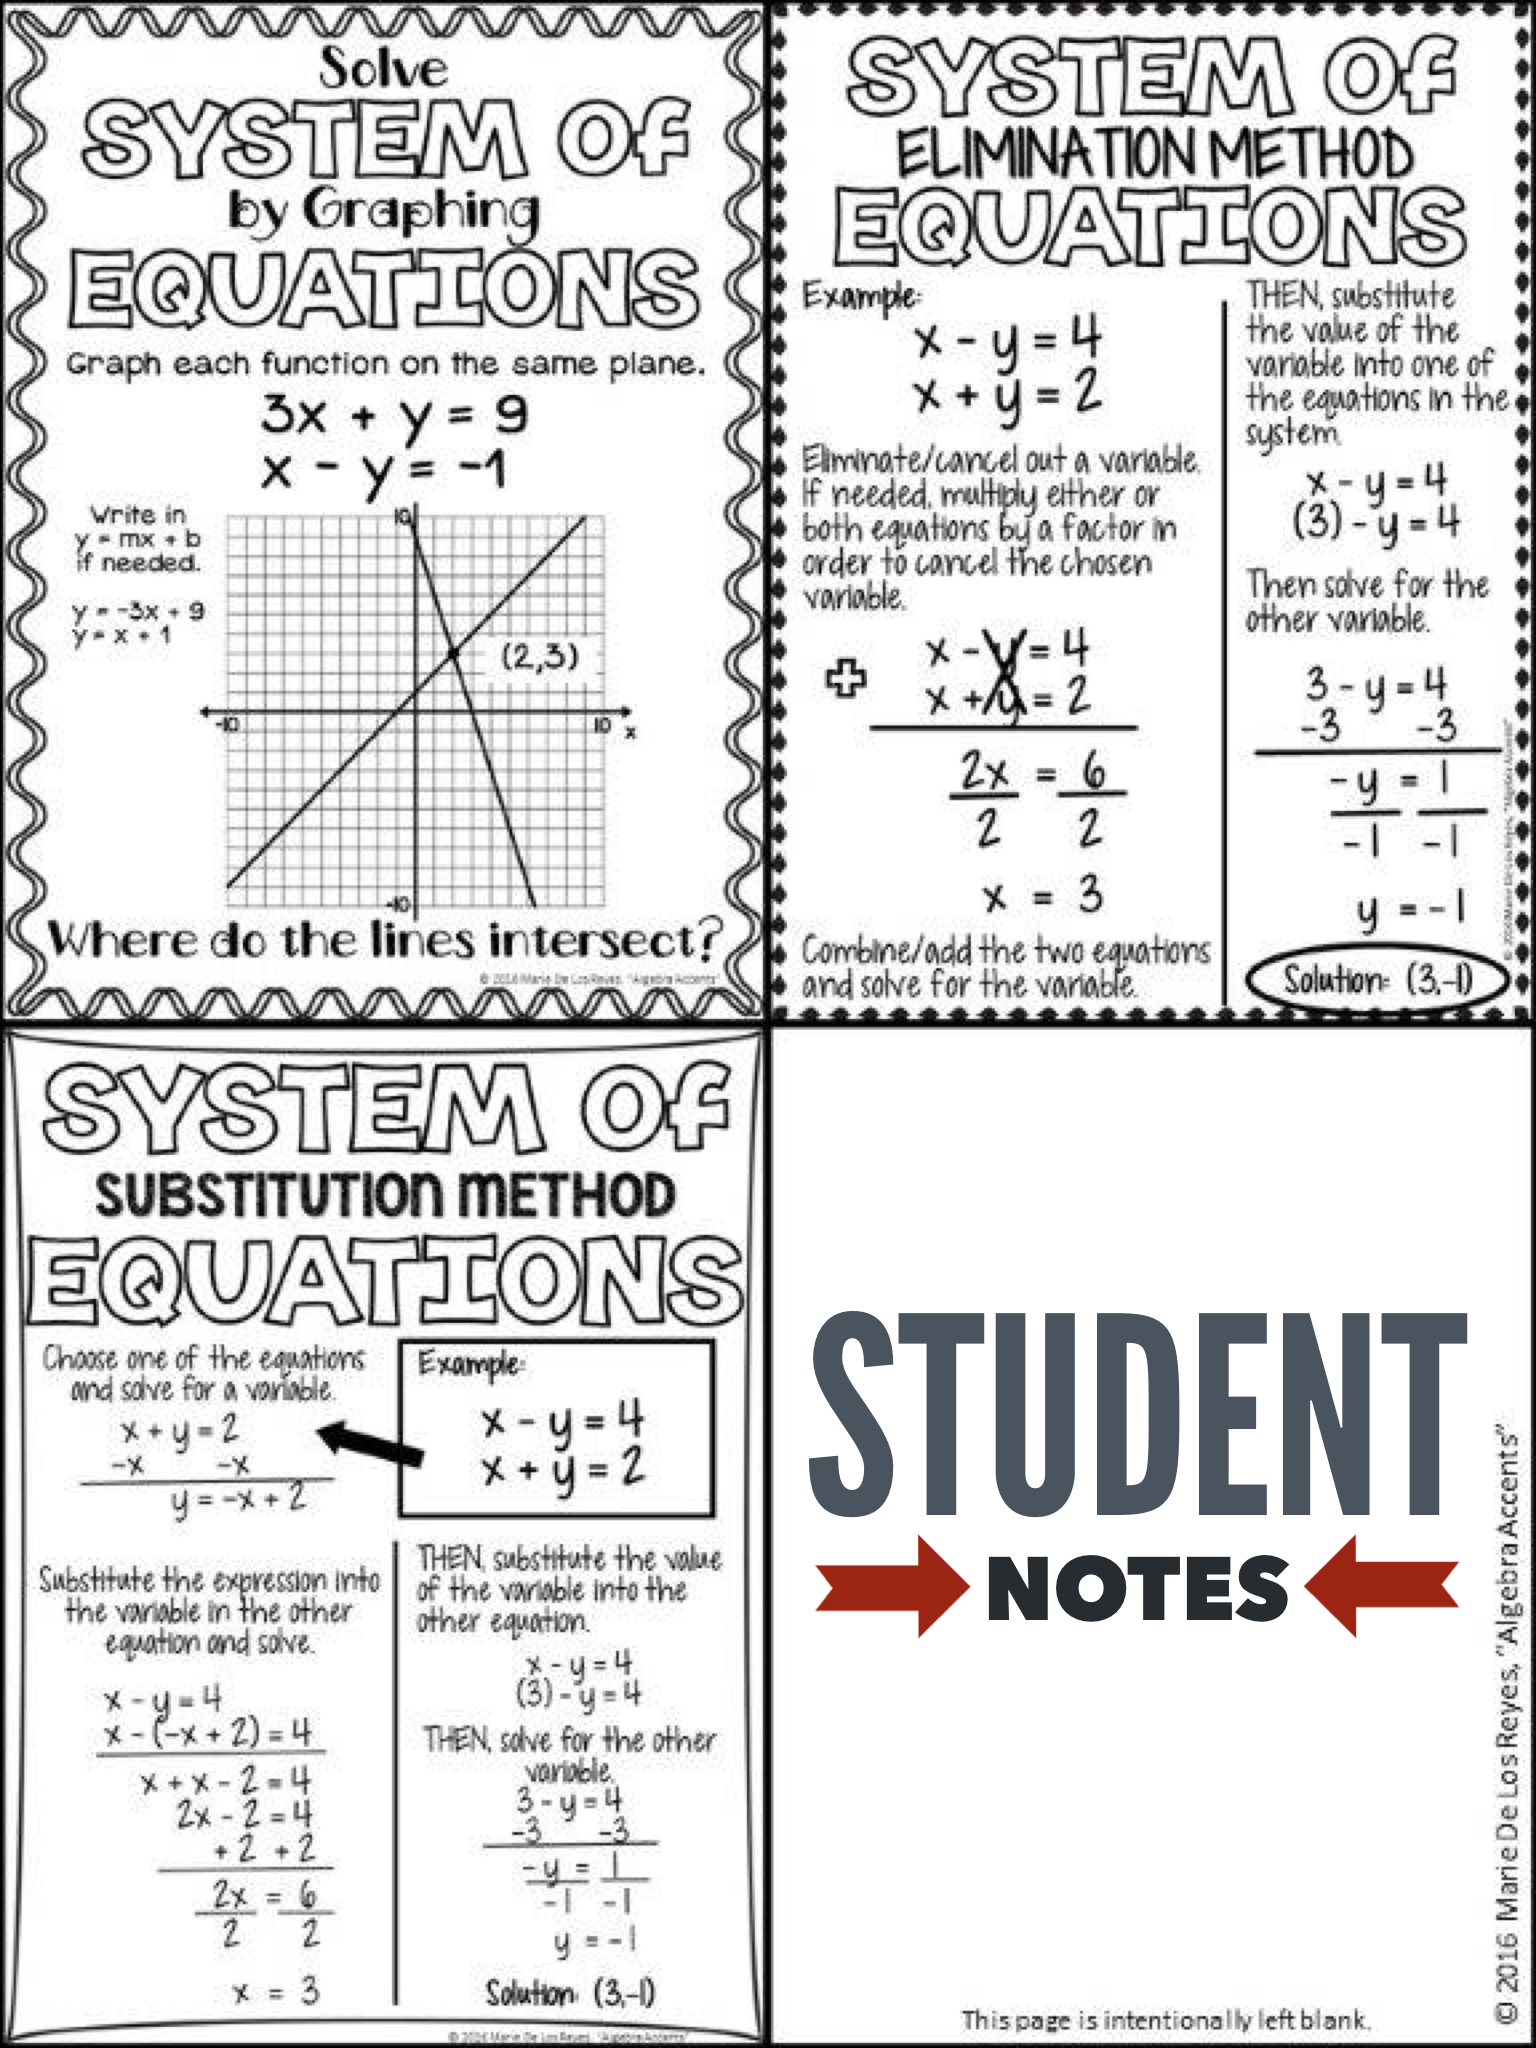 Systems of Equations Student Notes and Practice | Middle school math ...